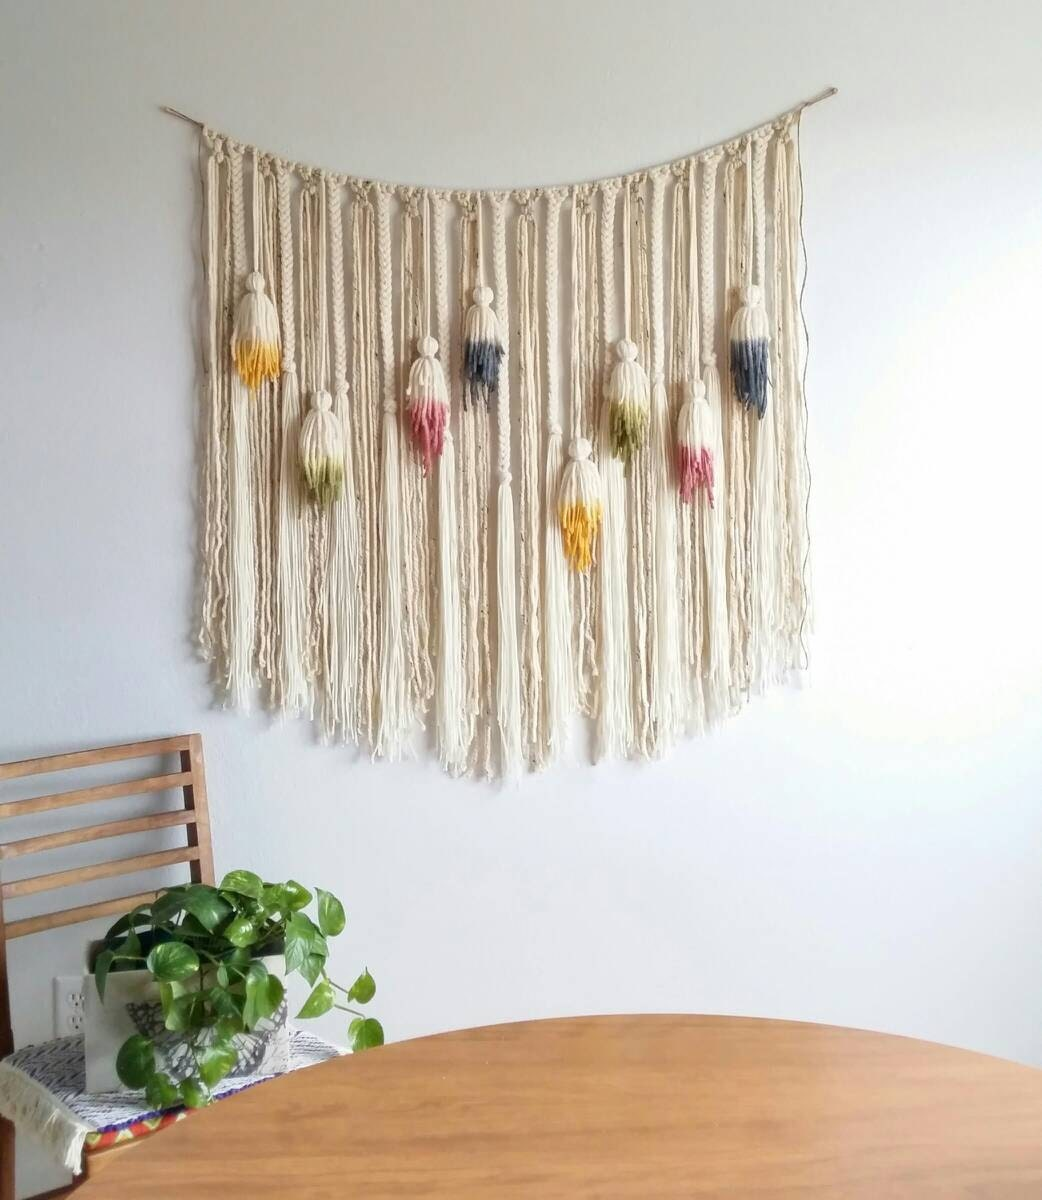 Large Tassels Home Decor: Yarn Wall Hanging. Macramé Hanging. Large. Tassels. Bohemian